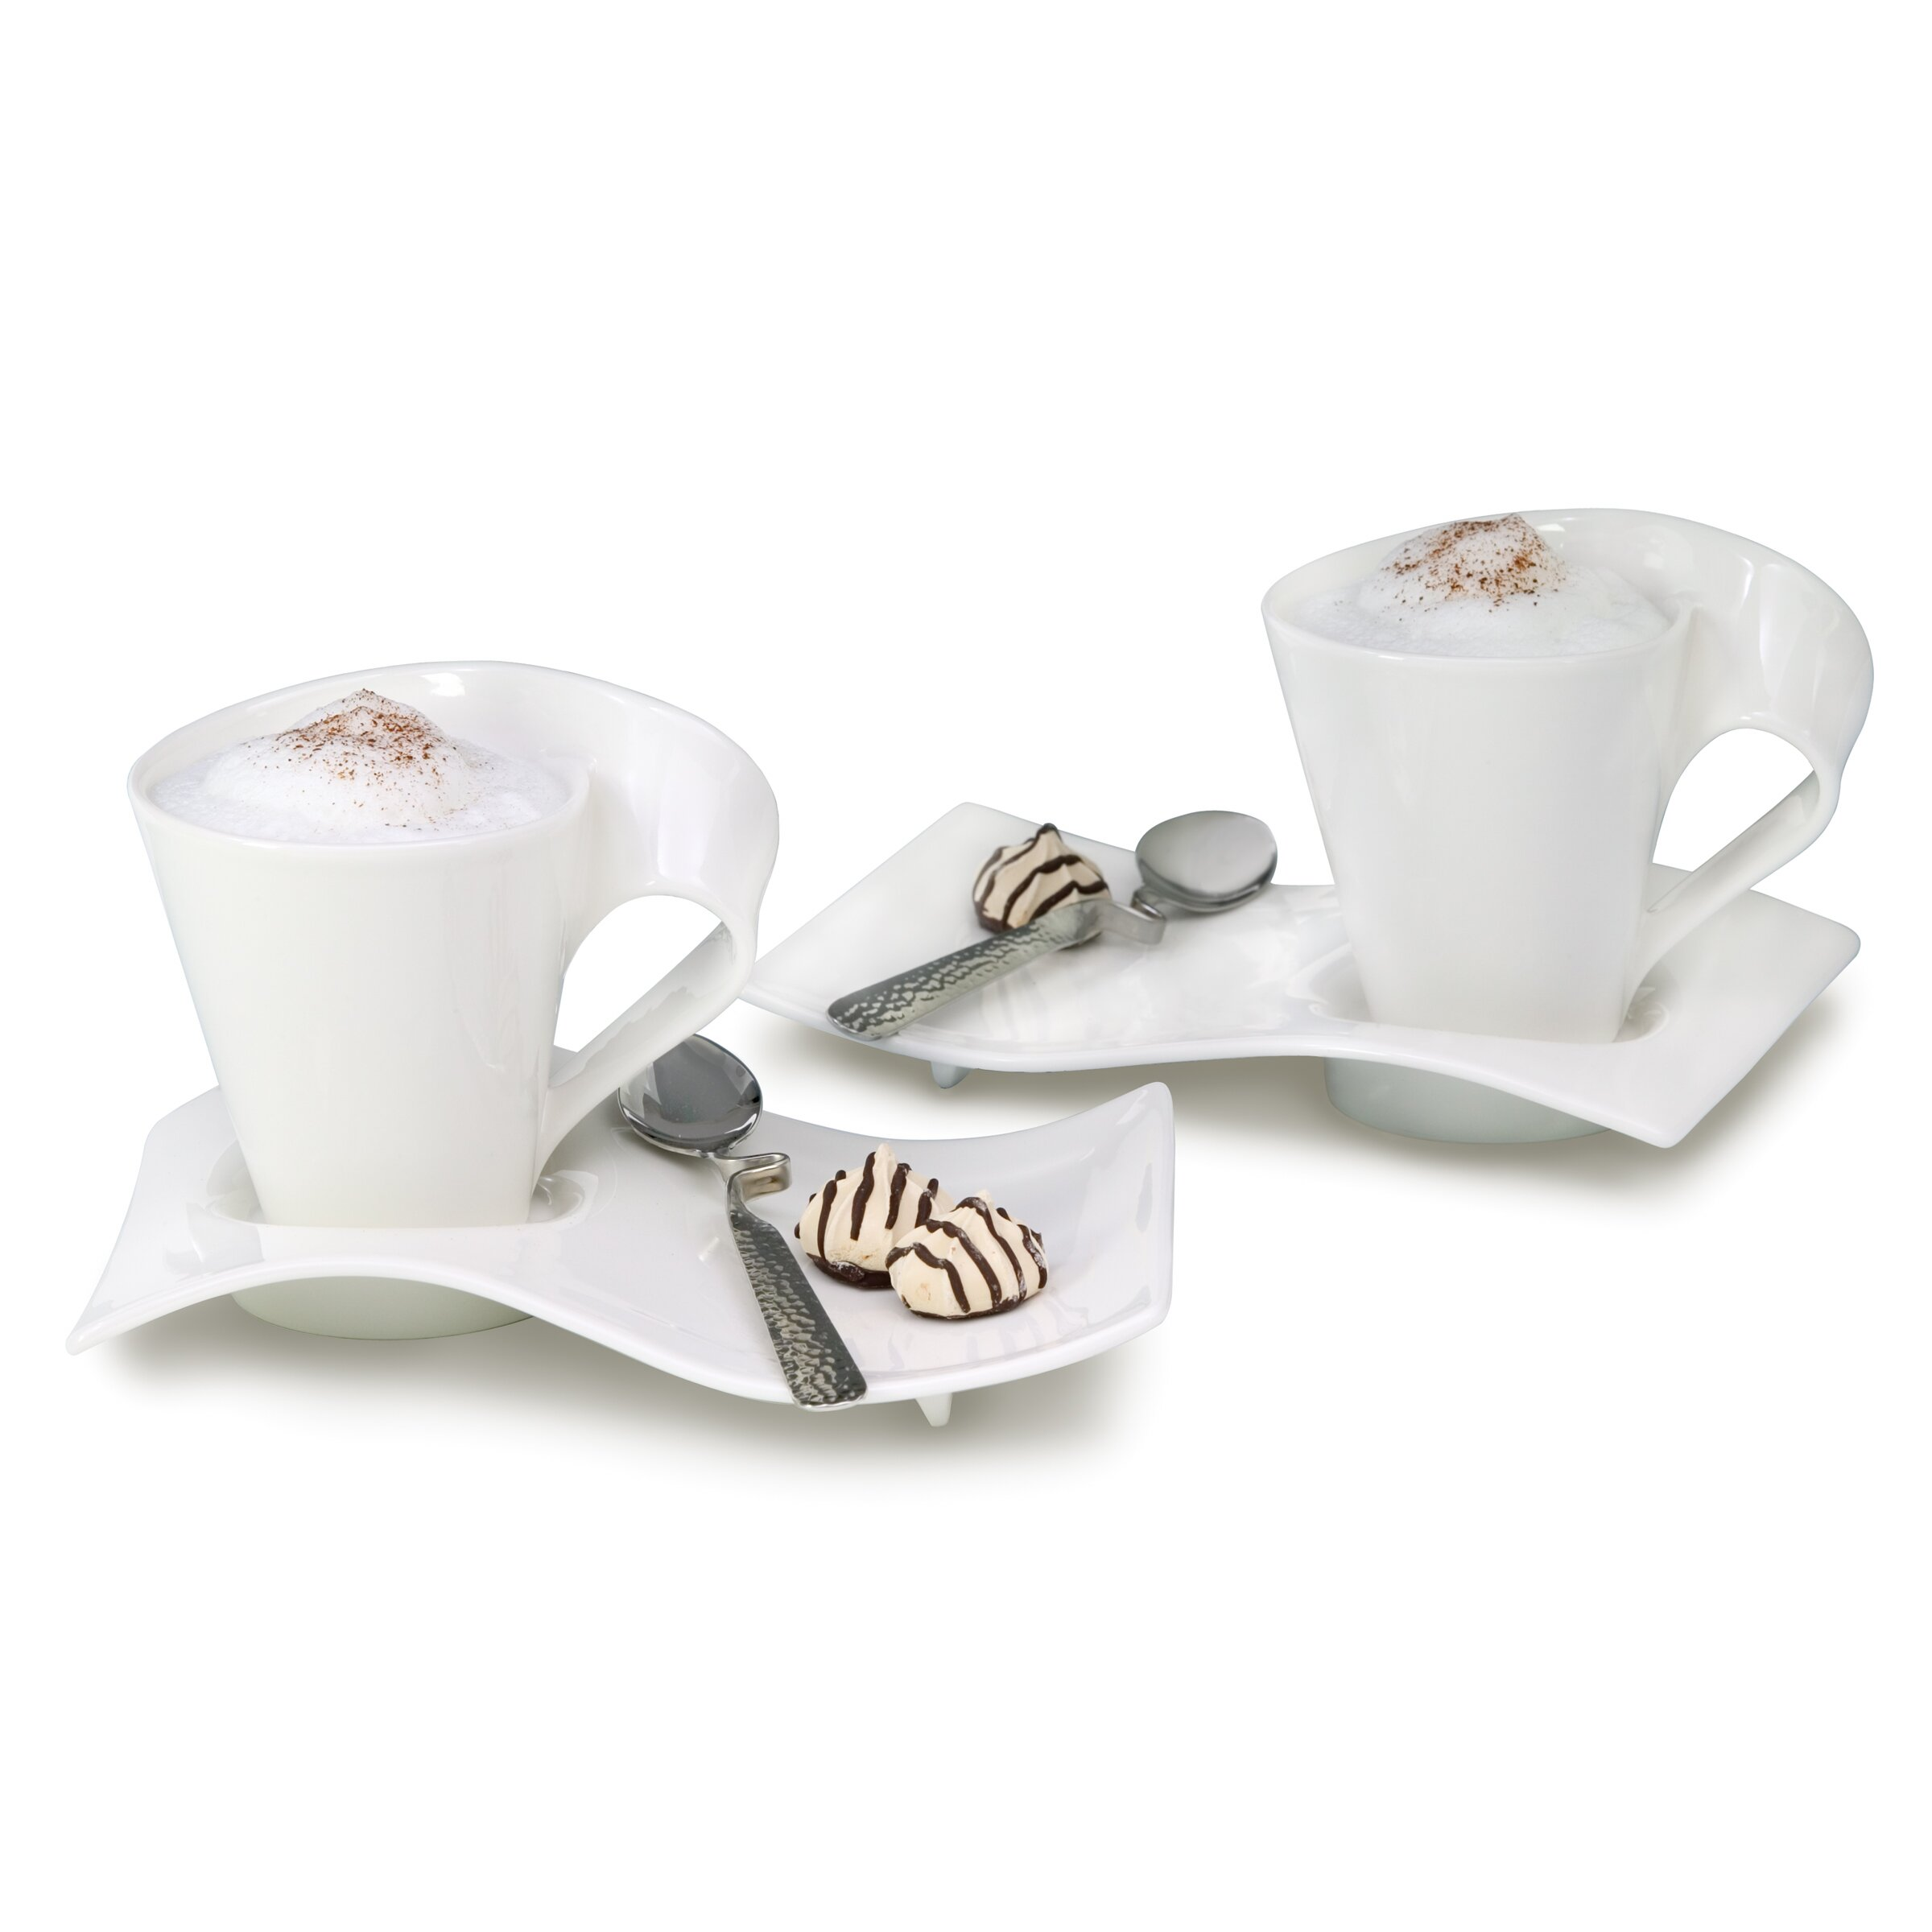 Villeroy boch new wave caffe 6 piece coffee set for Villeroy boch wave